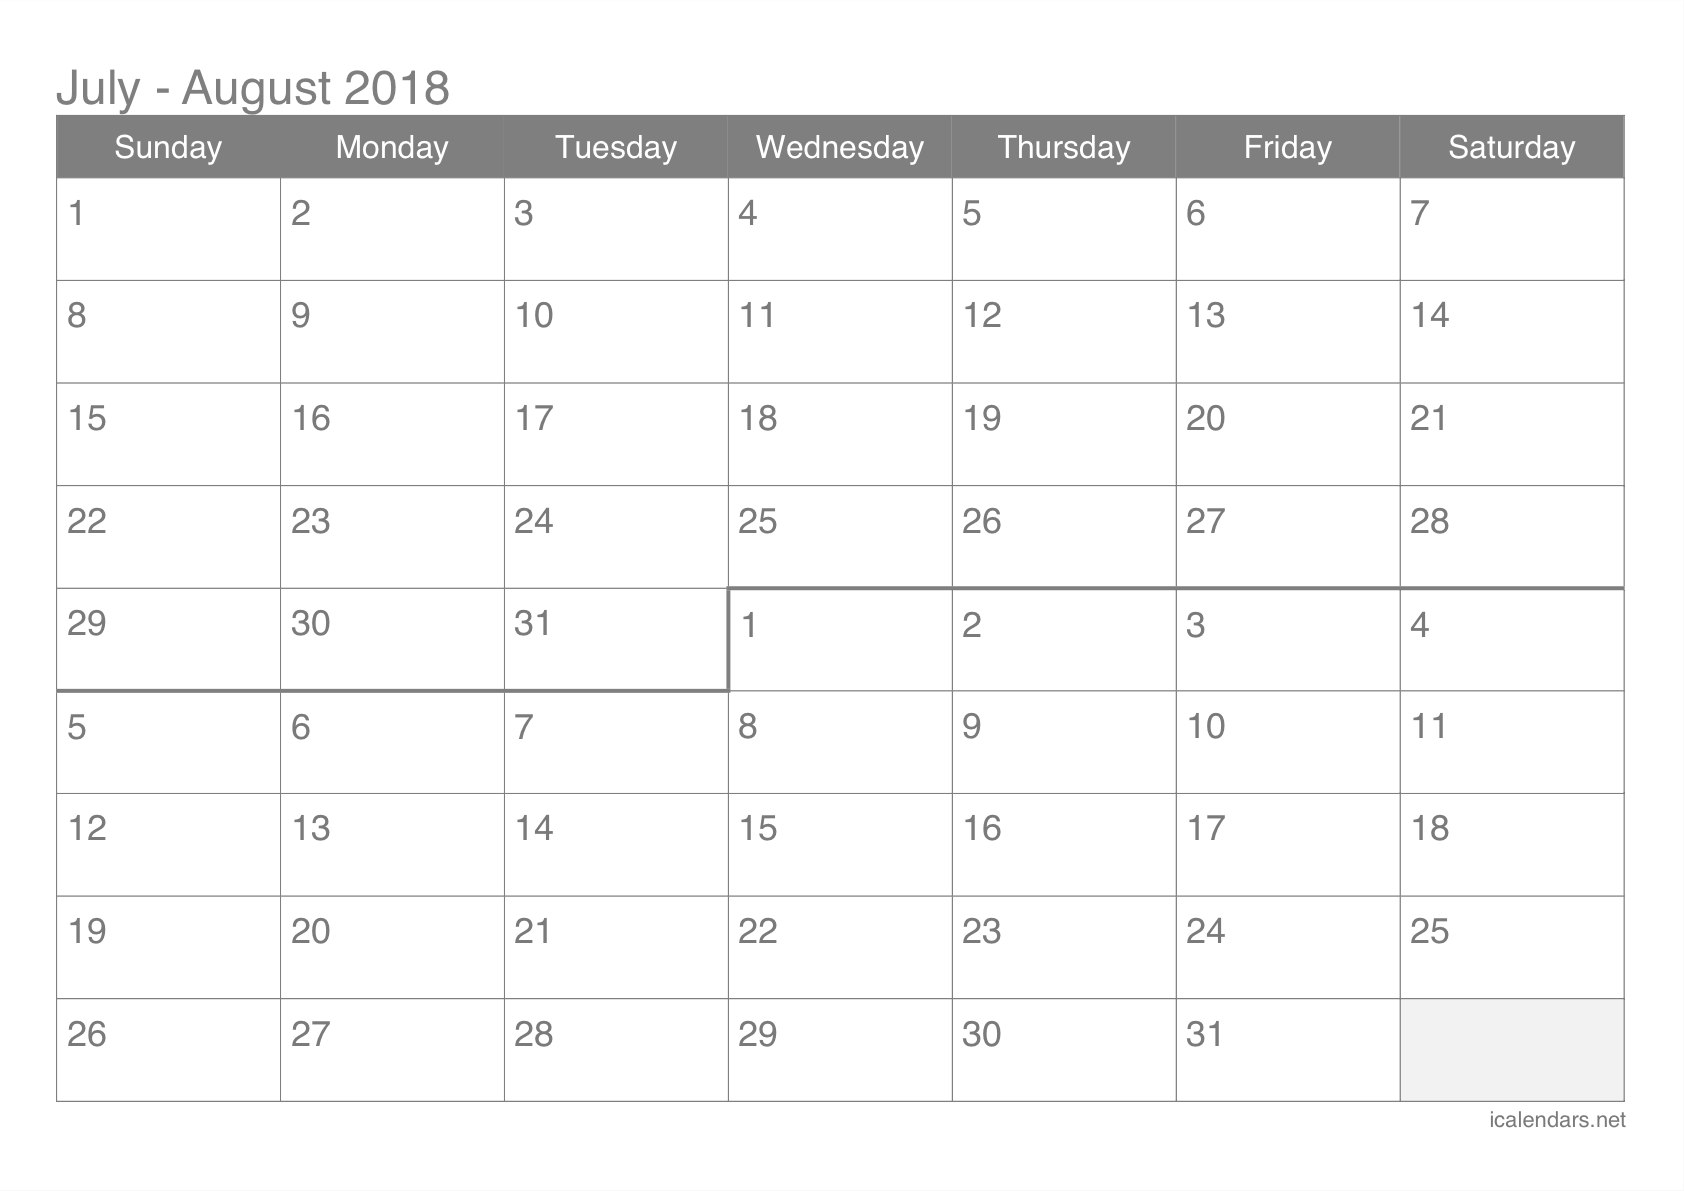 July and August 2018 Printable Calendar - icalendars net